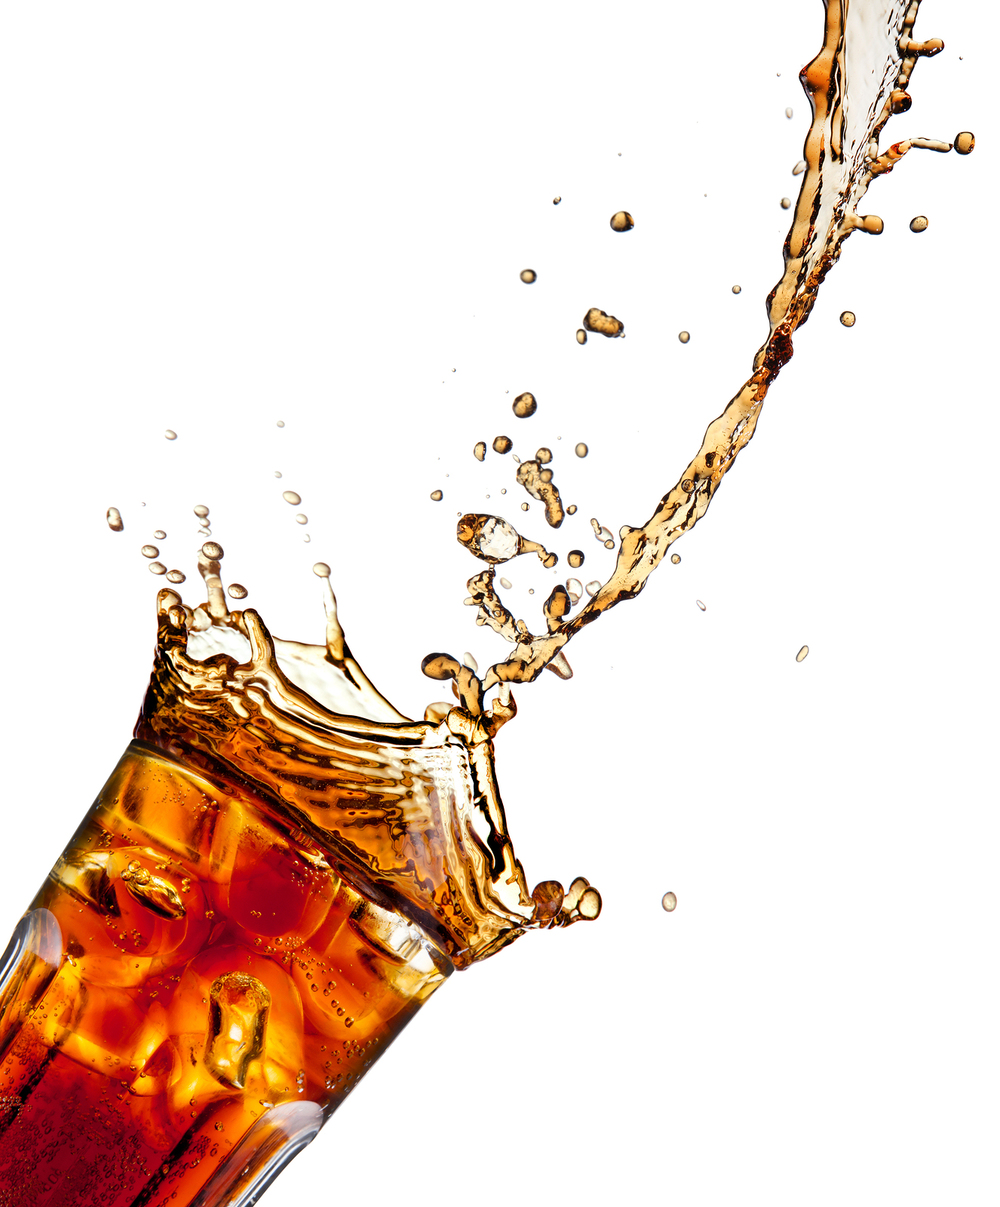 bigstock-Pouring-cola-into-glass-isola-31710560.jpg